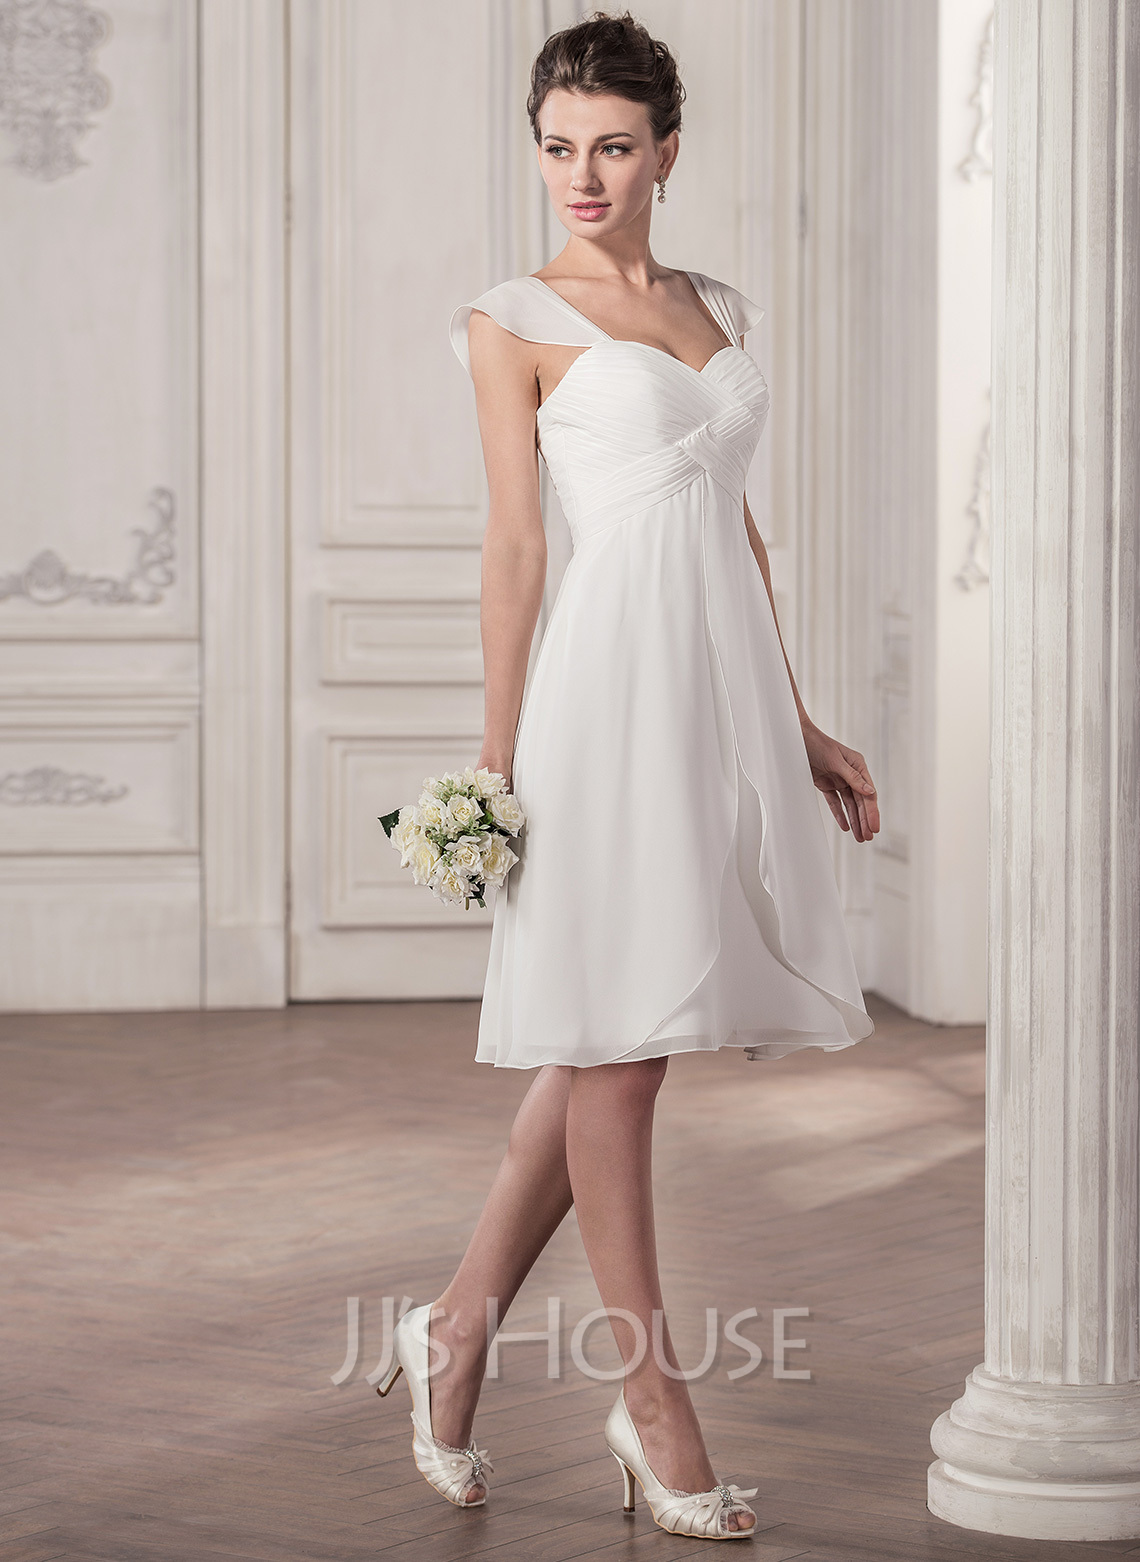 Sweetheart Knee-Length Chiffon Wedding Dress With Ruffle